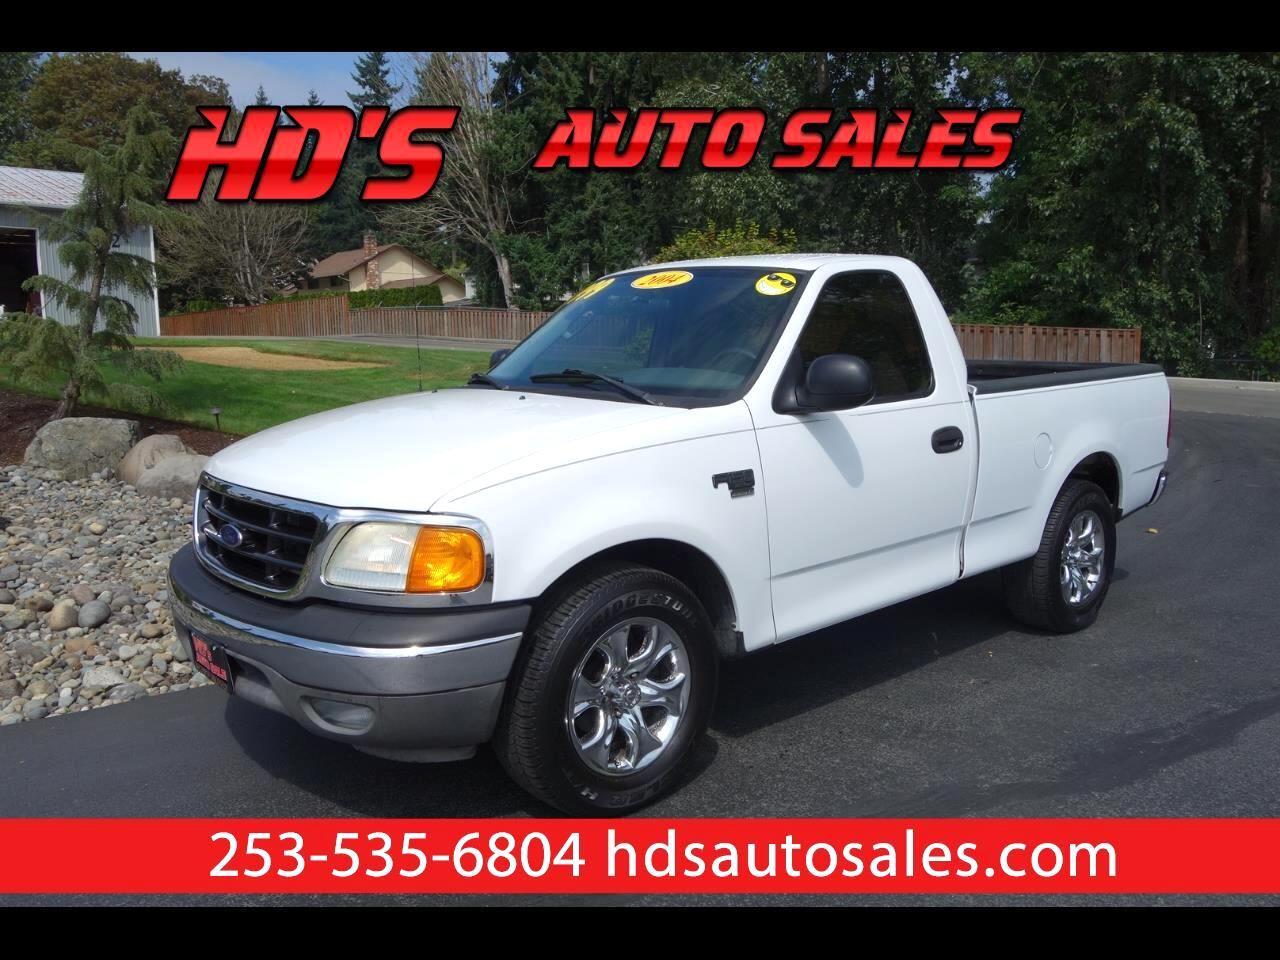 Ford F-150 Heritage XL 2WD 2004